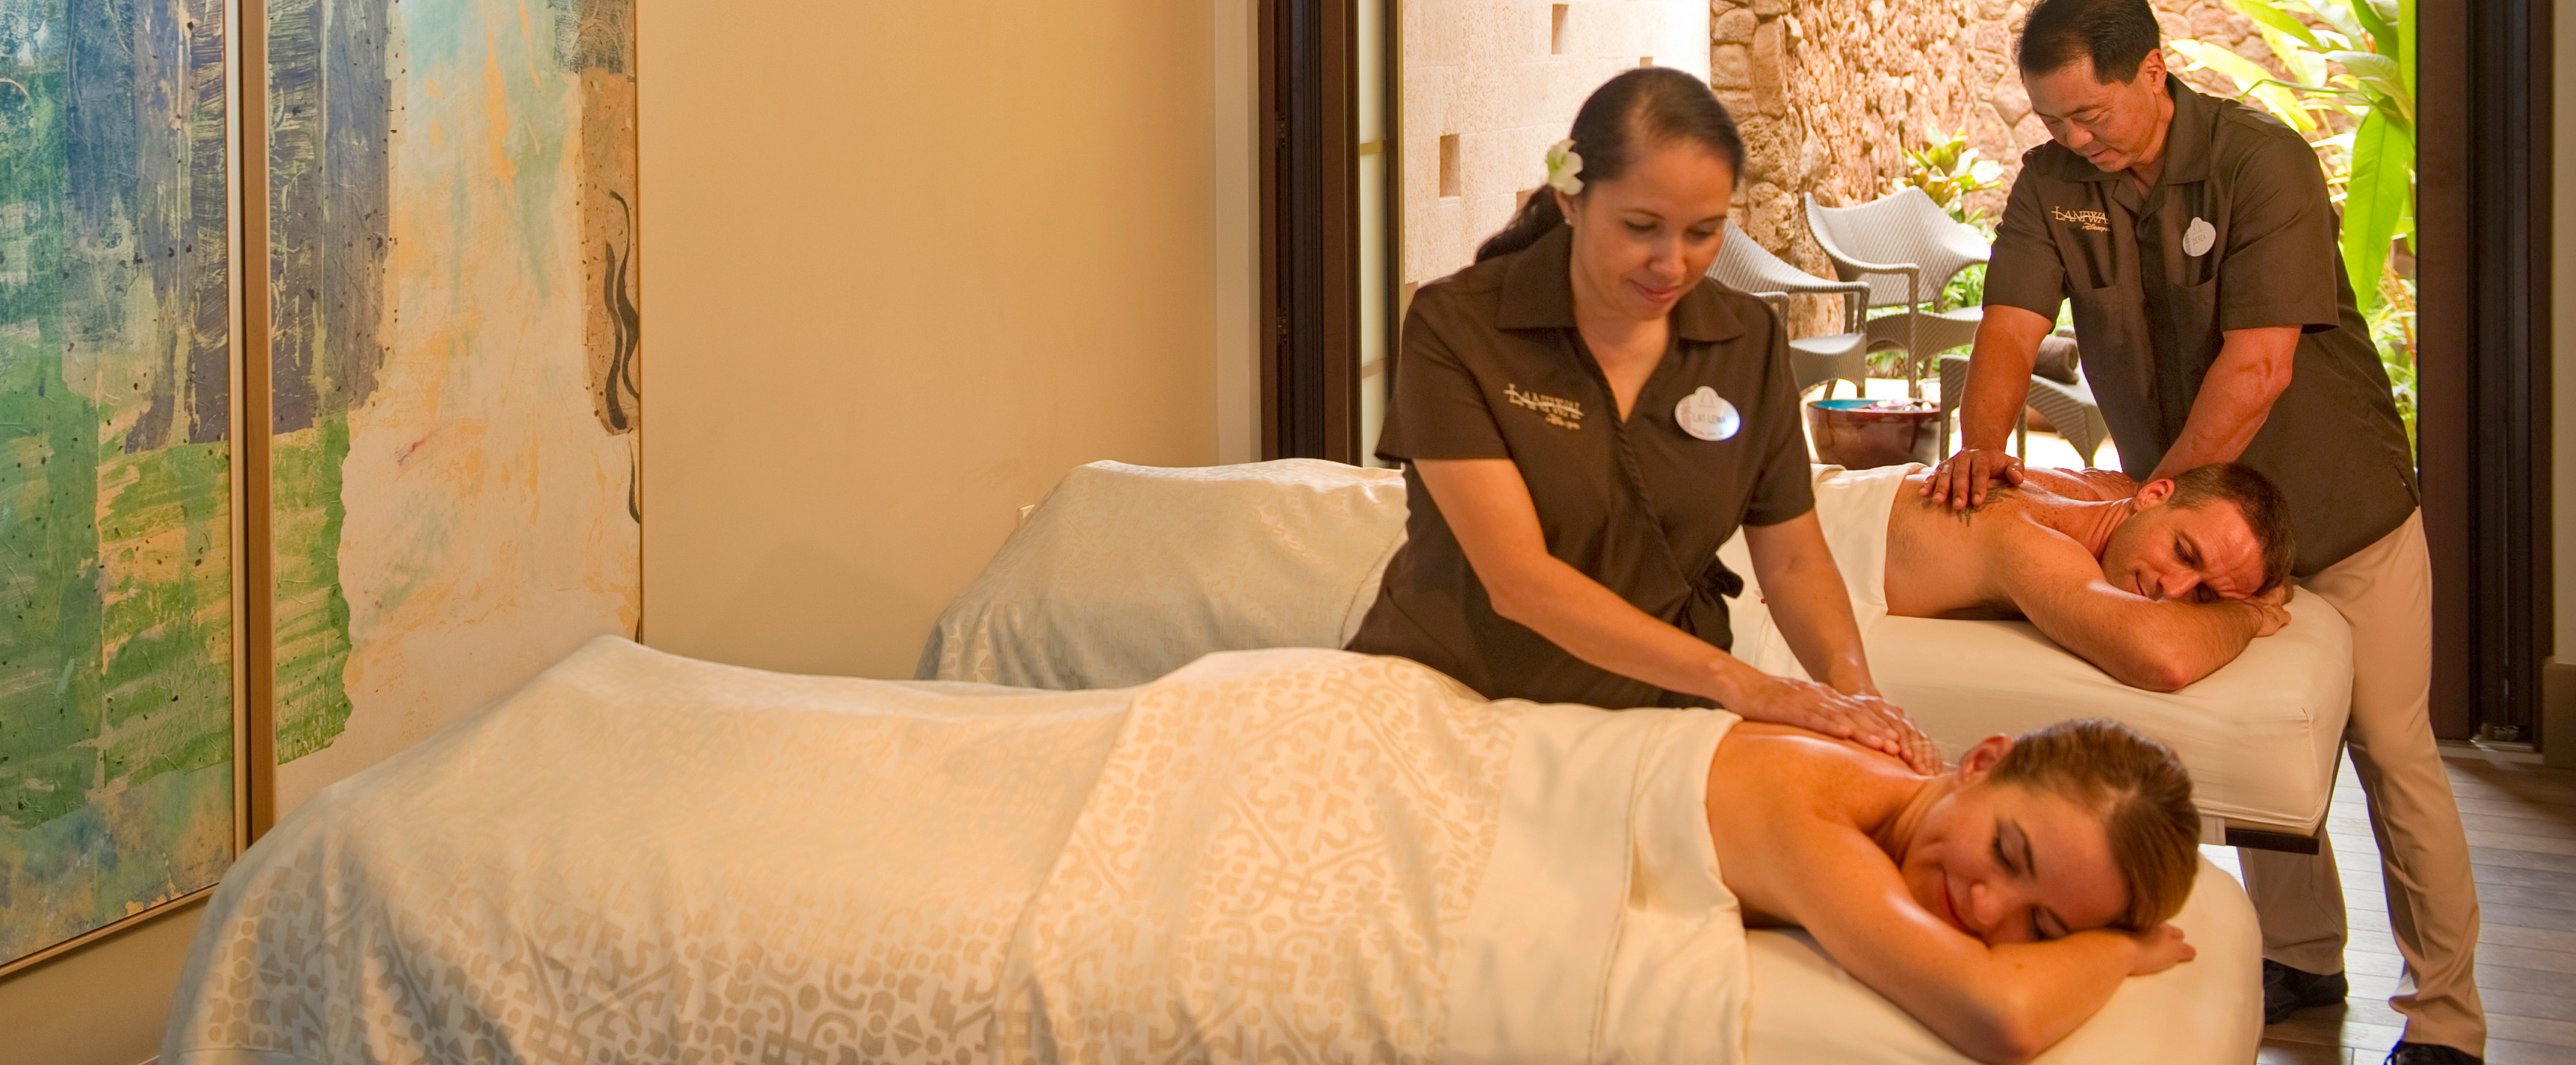 Spa therapies treatments aulani hawaii resort spa for Spa services near me